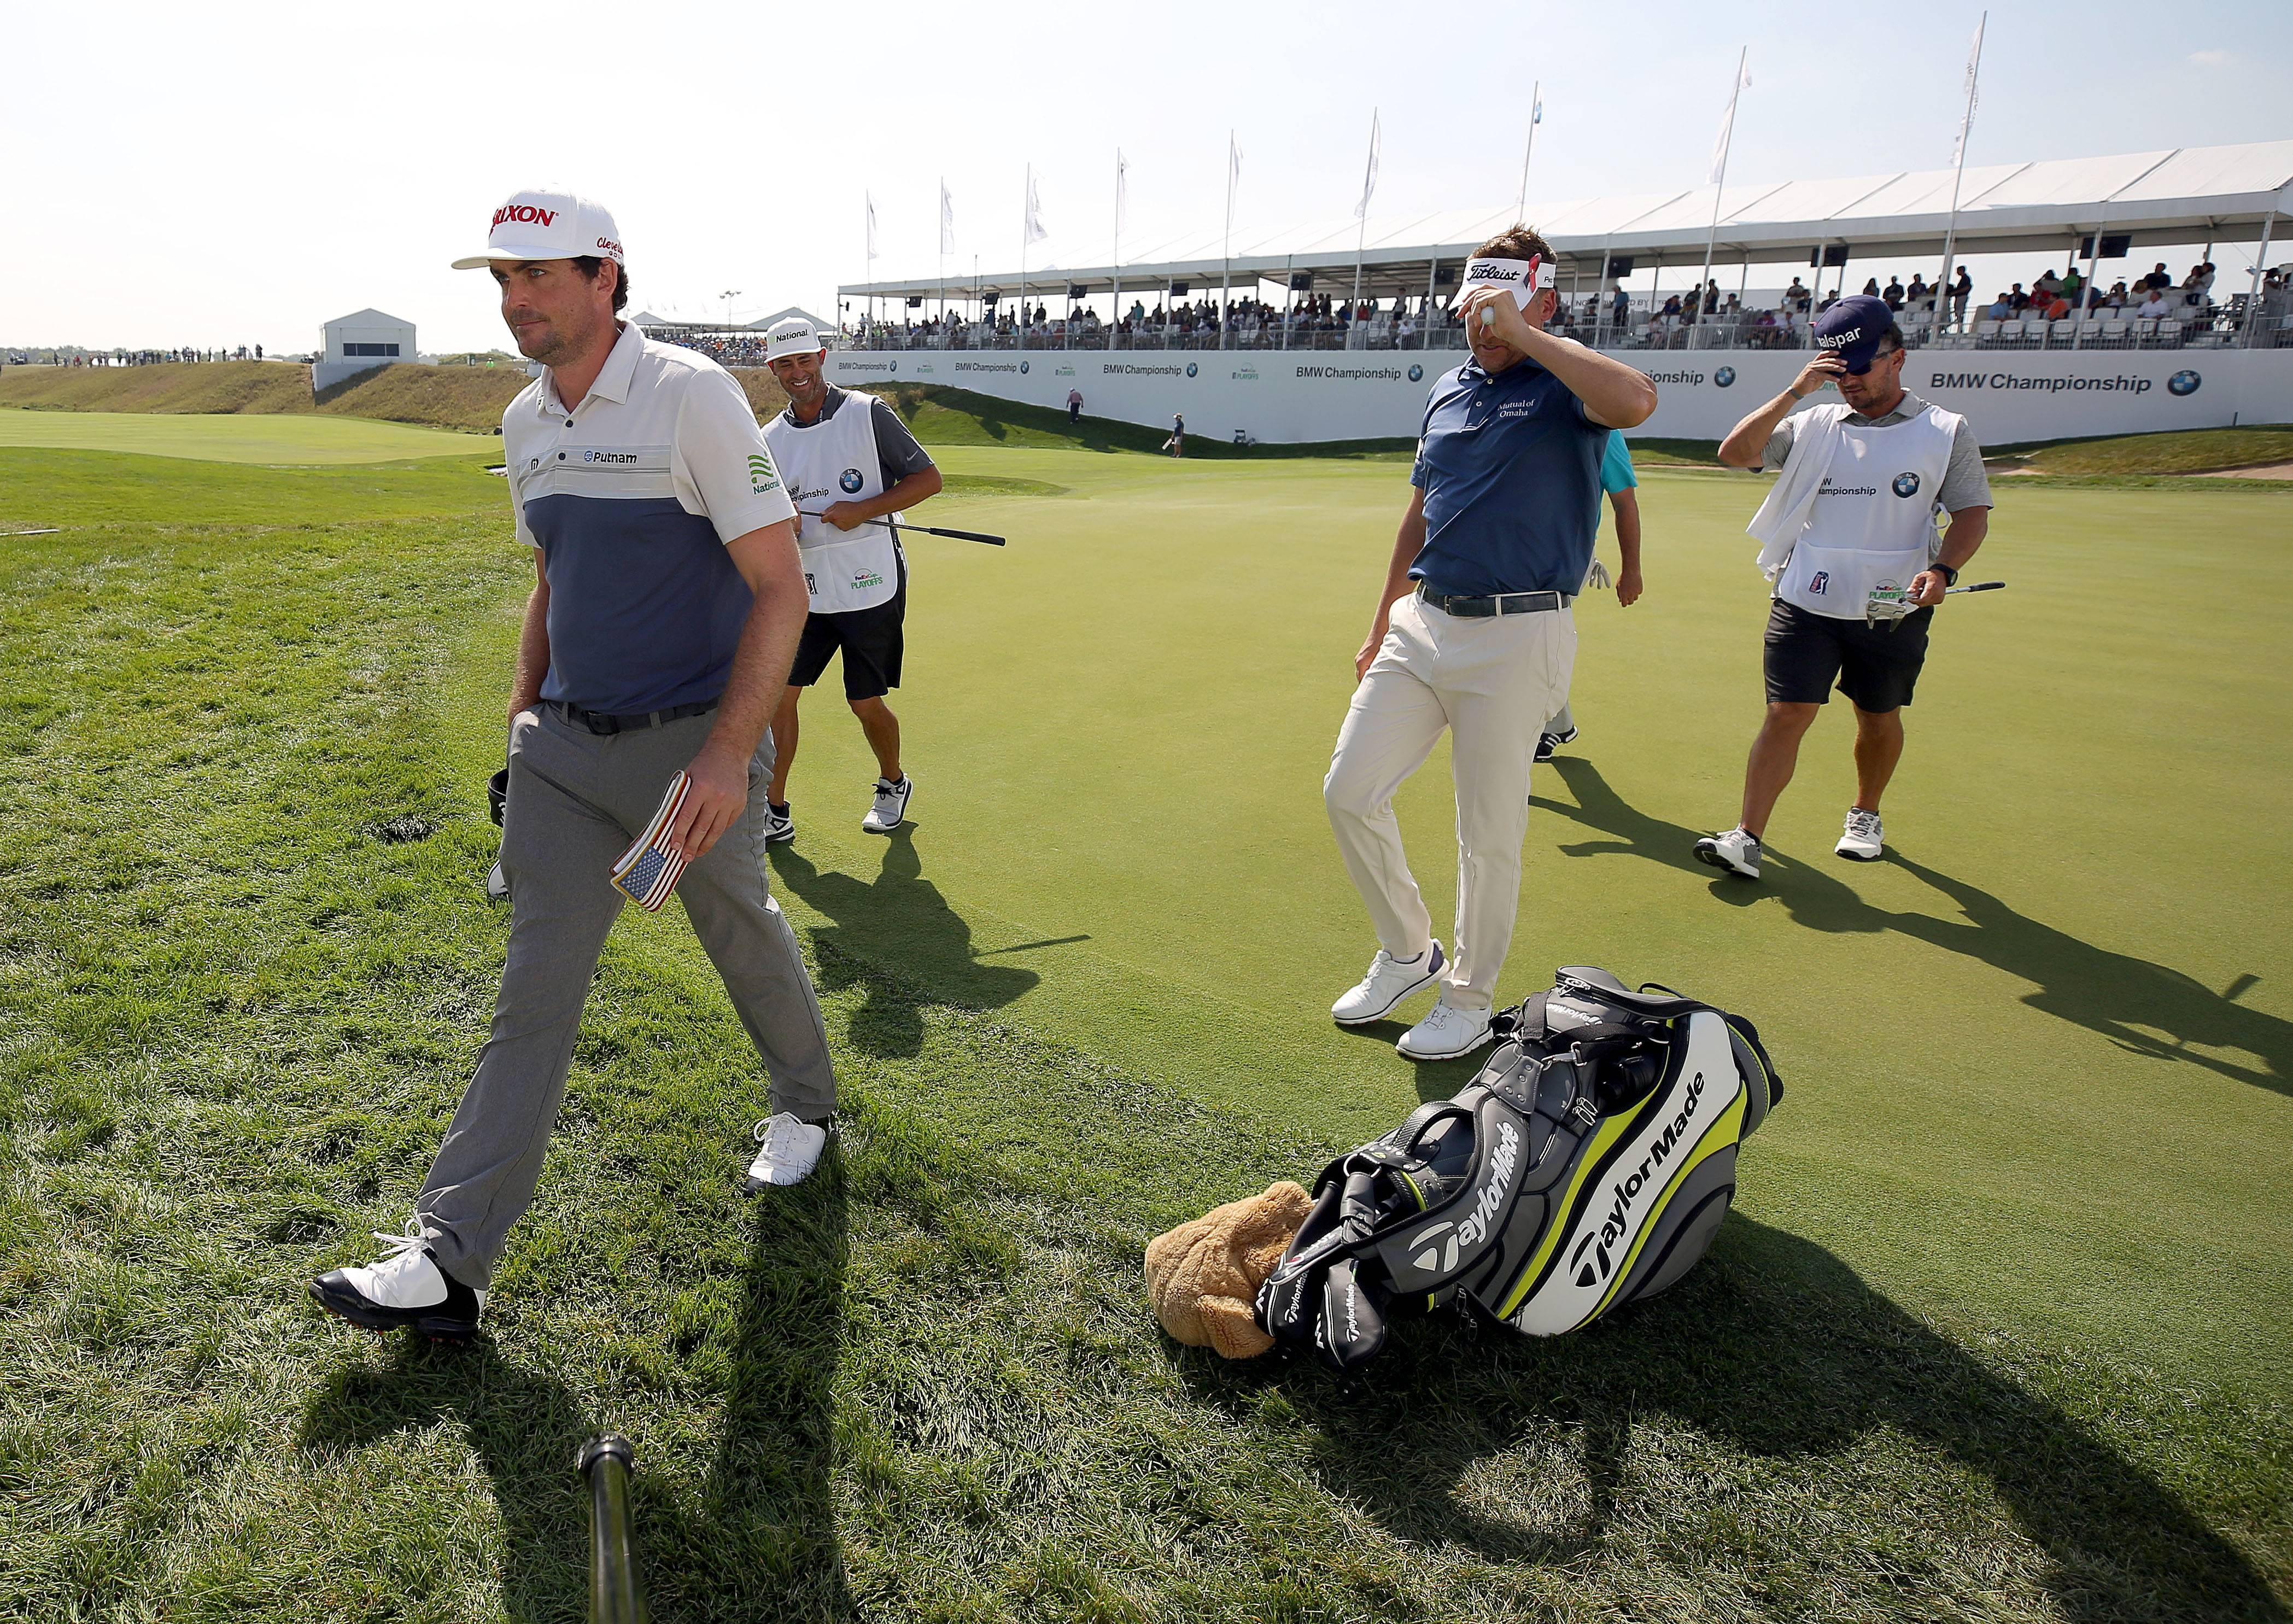 Steve Lundy/slundy@dailyherald.comKeegan Bradley walks off the 18th green during the first round of the BMW Championship at Conway Farms Golf Course in Lake Forest Thursday, September 14, 2017.